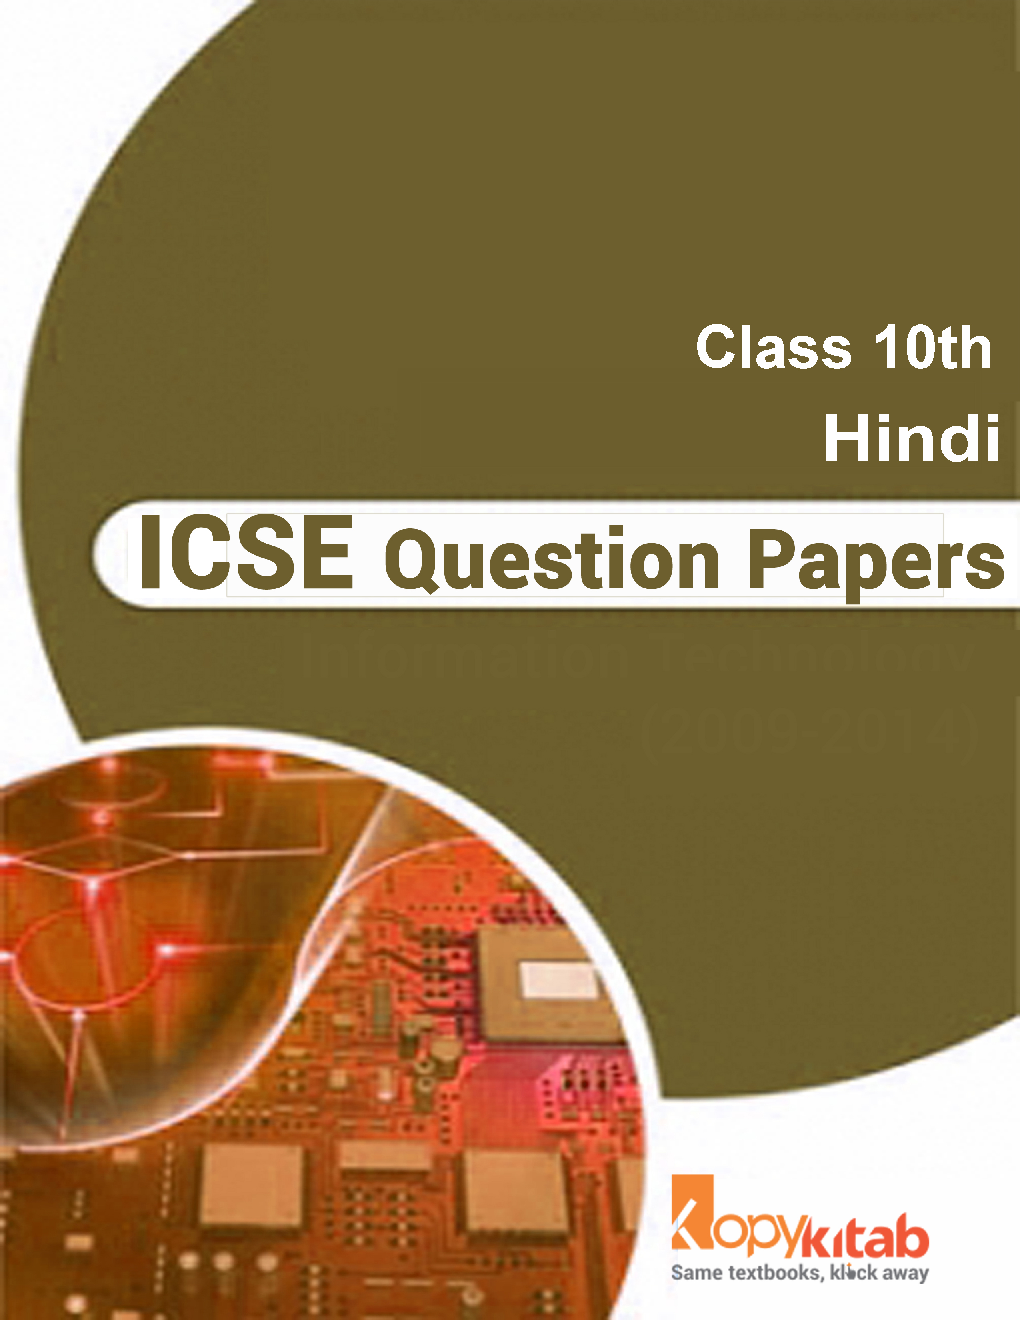 ICSE Sample Question Papers For Class 10 HINDI - Page 1